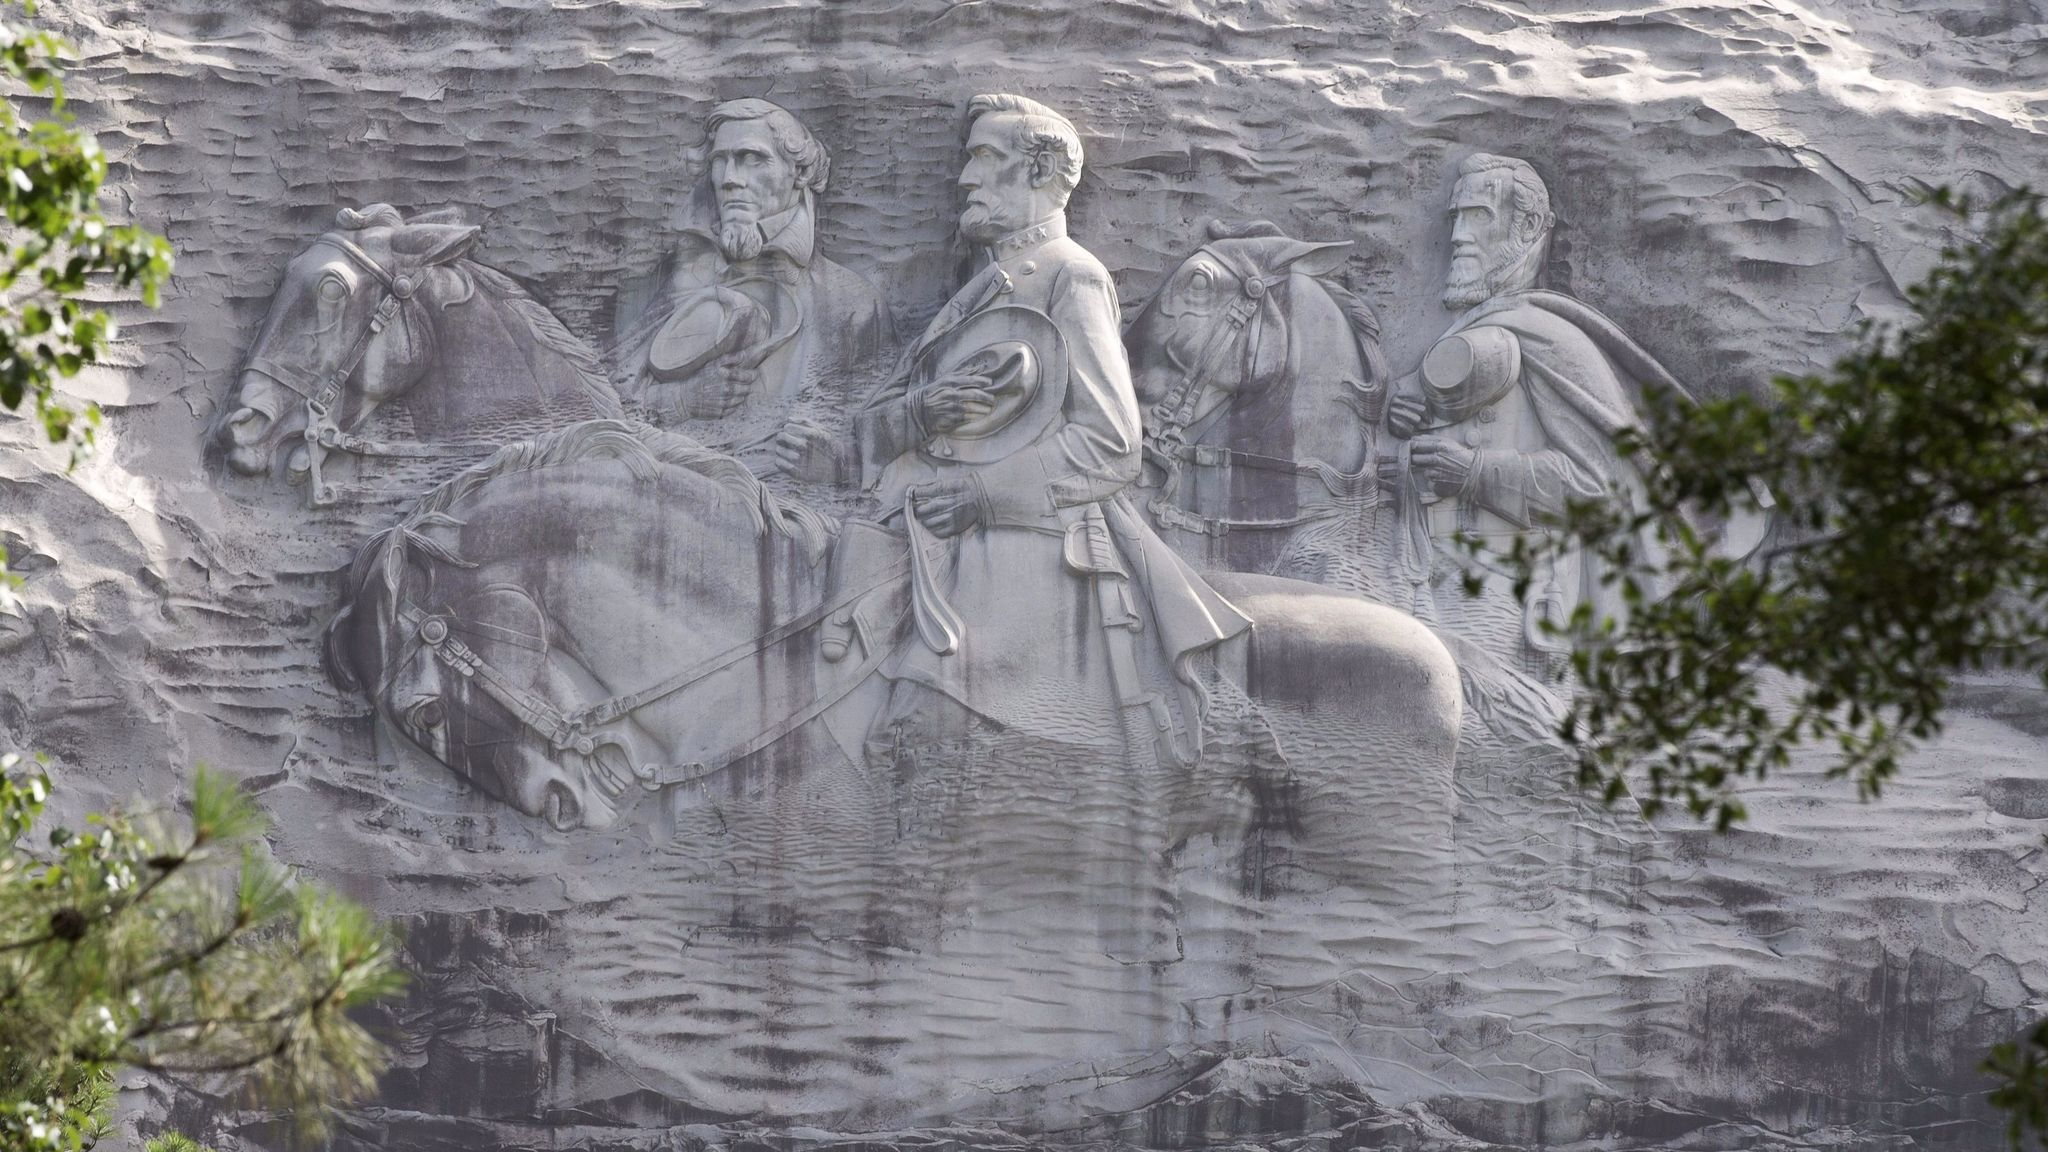 A June 23, 2015, photo shows a carving depicting Confederates Stonewall Jackson, Robert E. Lee and Jefferson Davis in Stone Mountain, Ga.